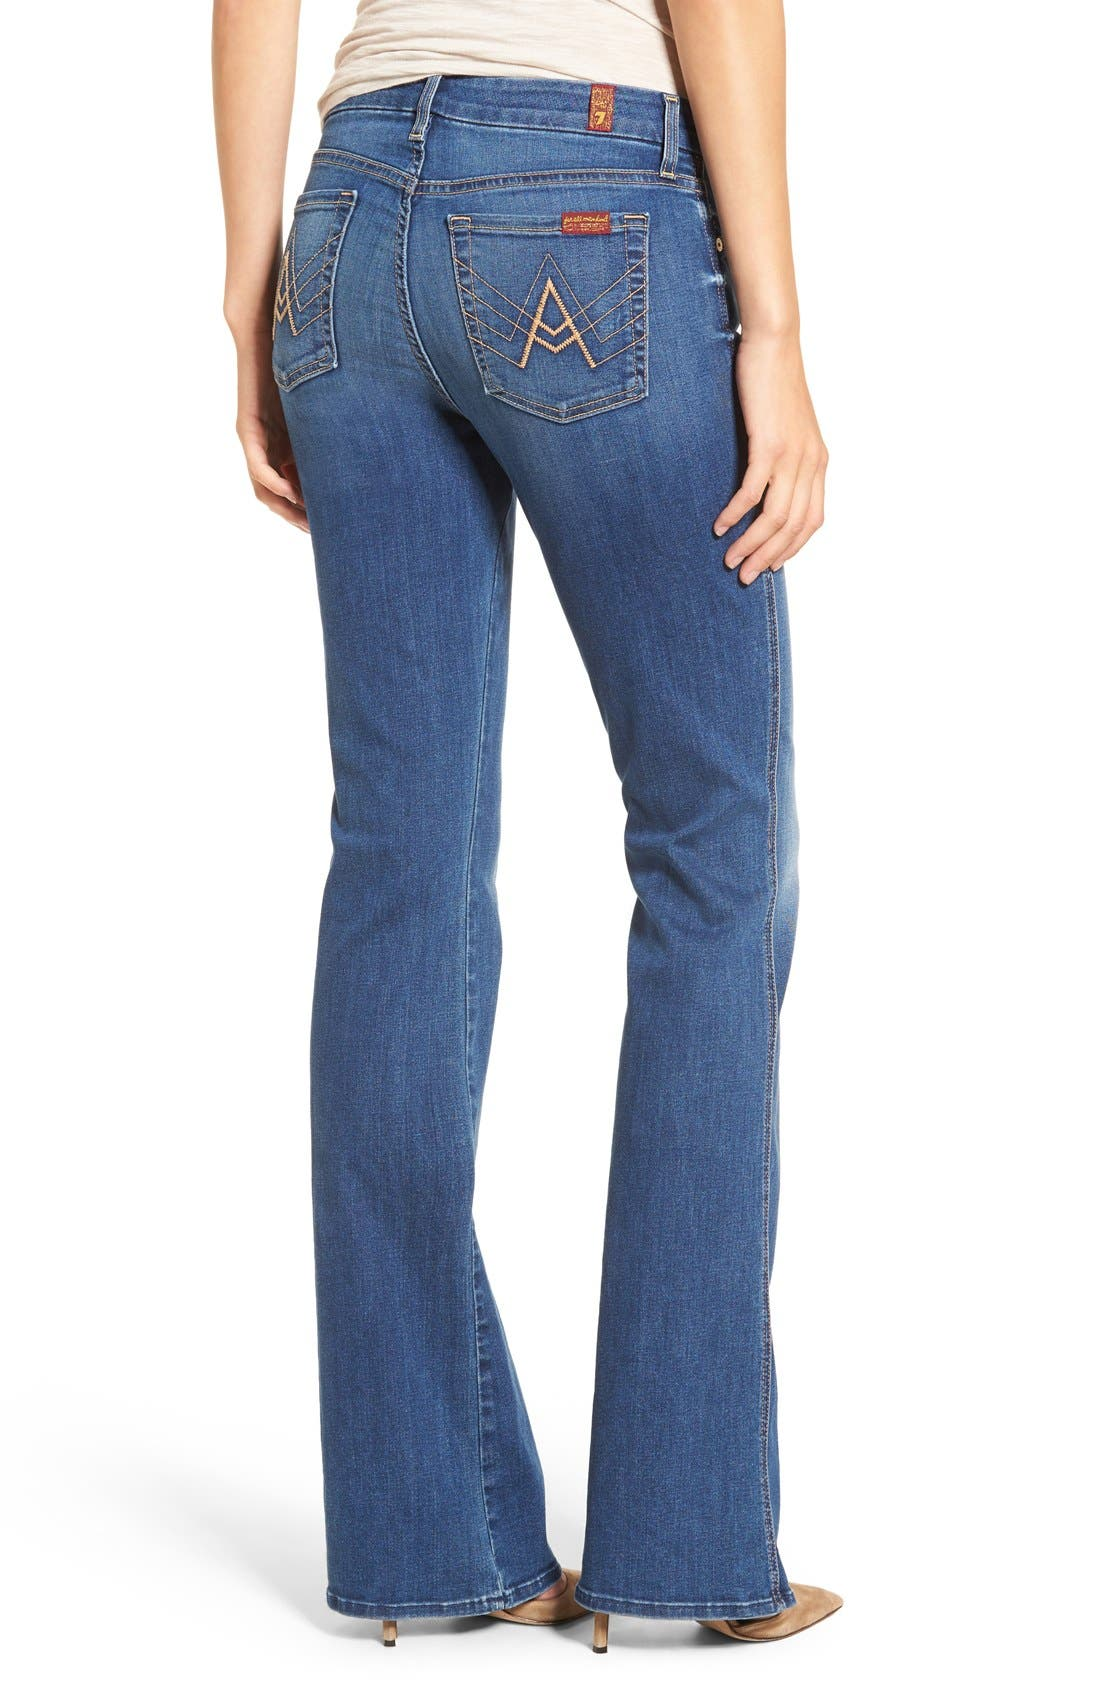 'b(air) - A Pocket' Flare Jeans,                             Alternate thumbnail 2, color,                             Reign